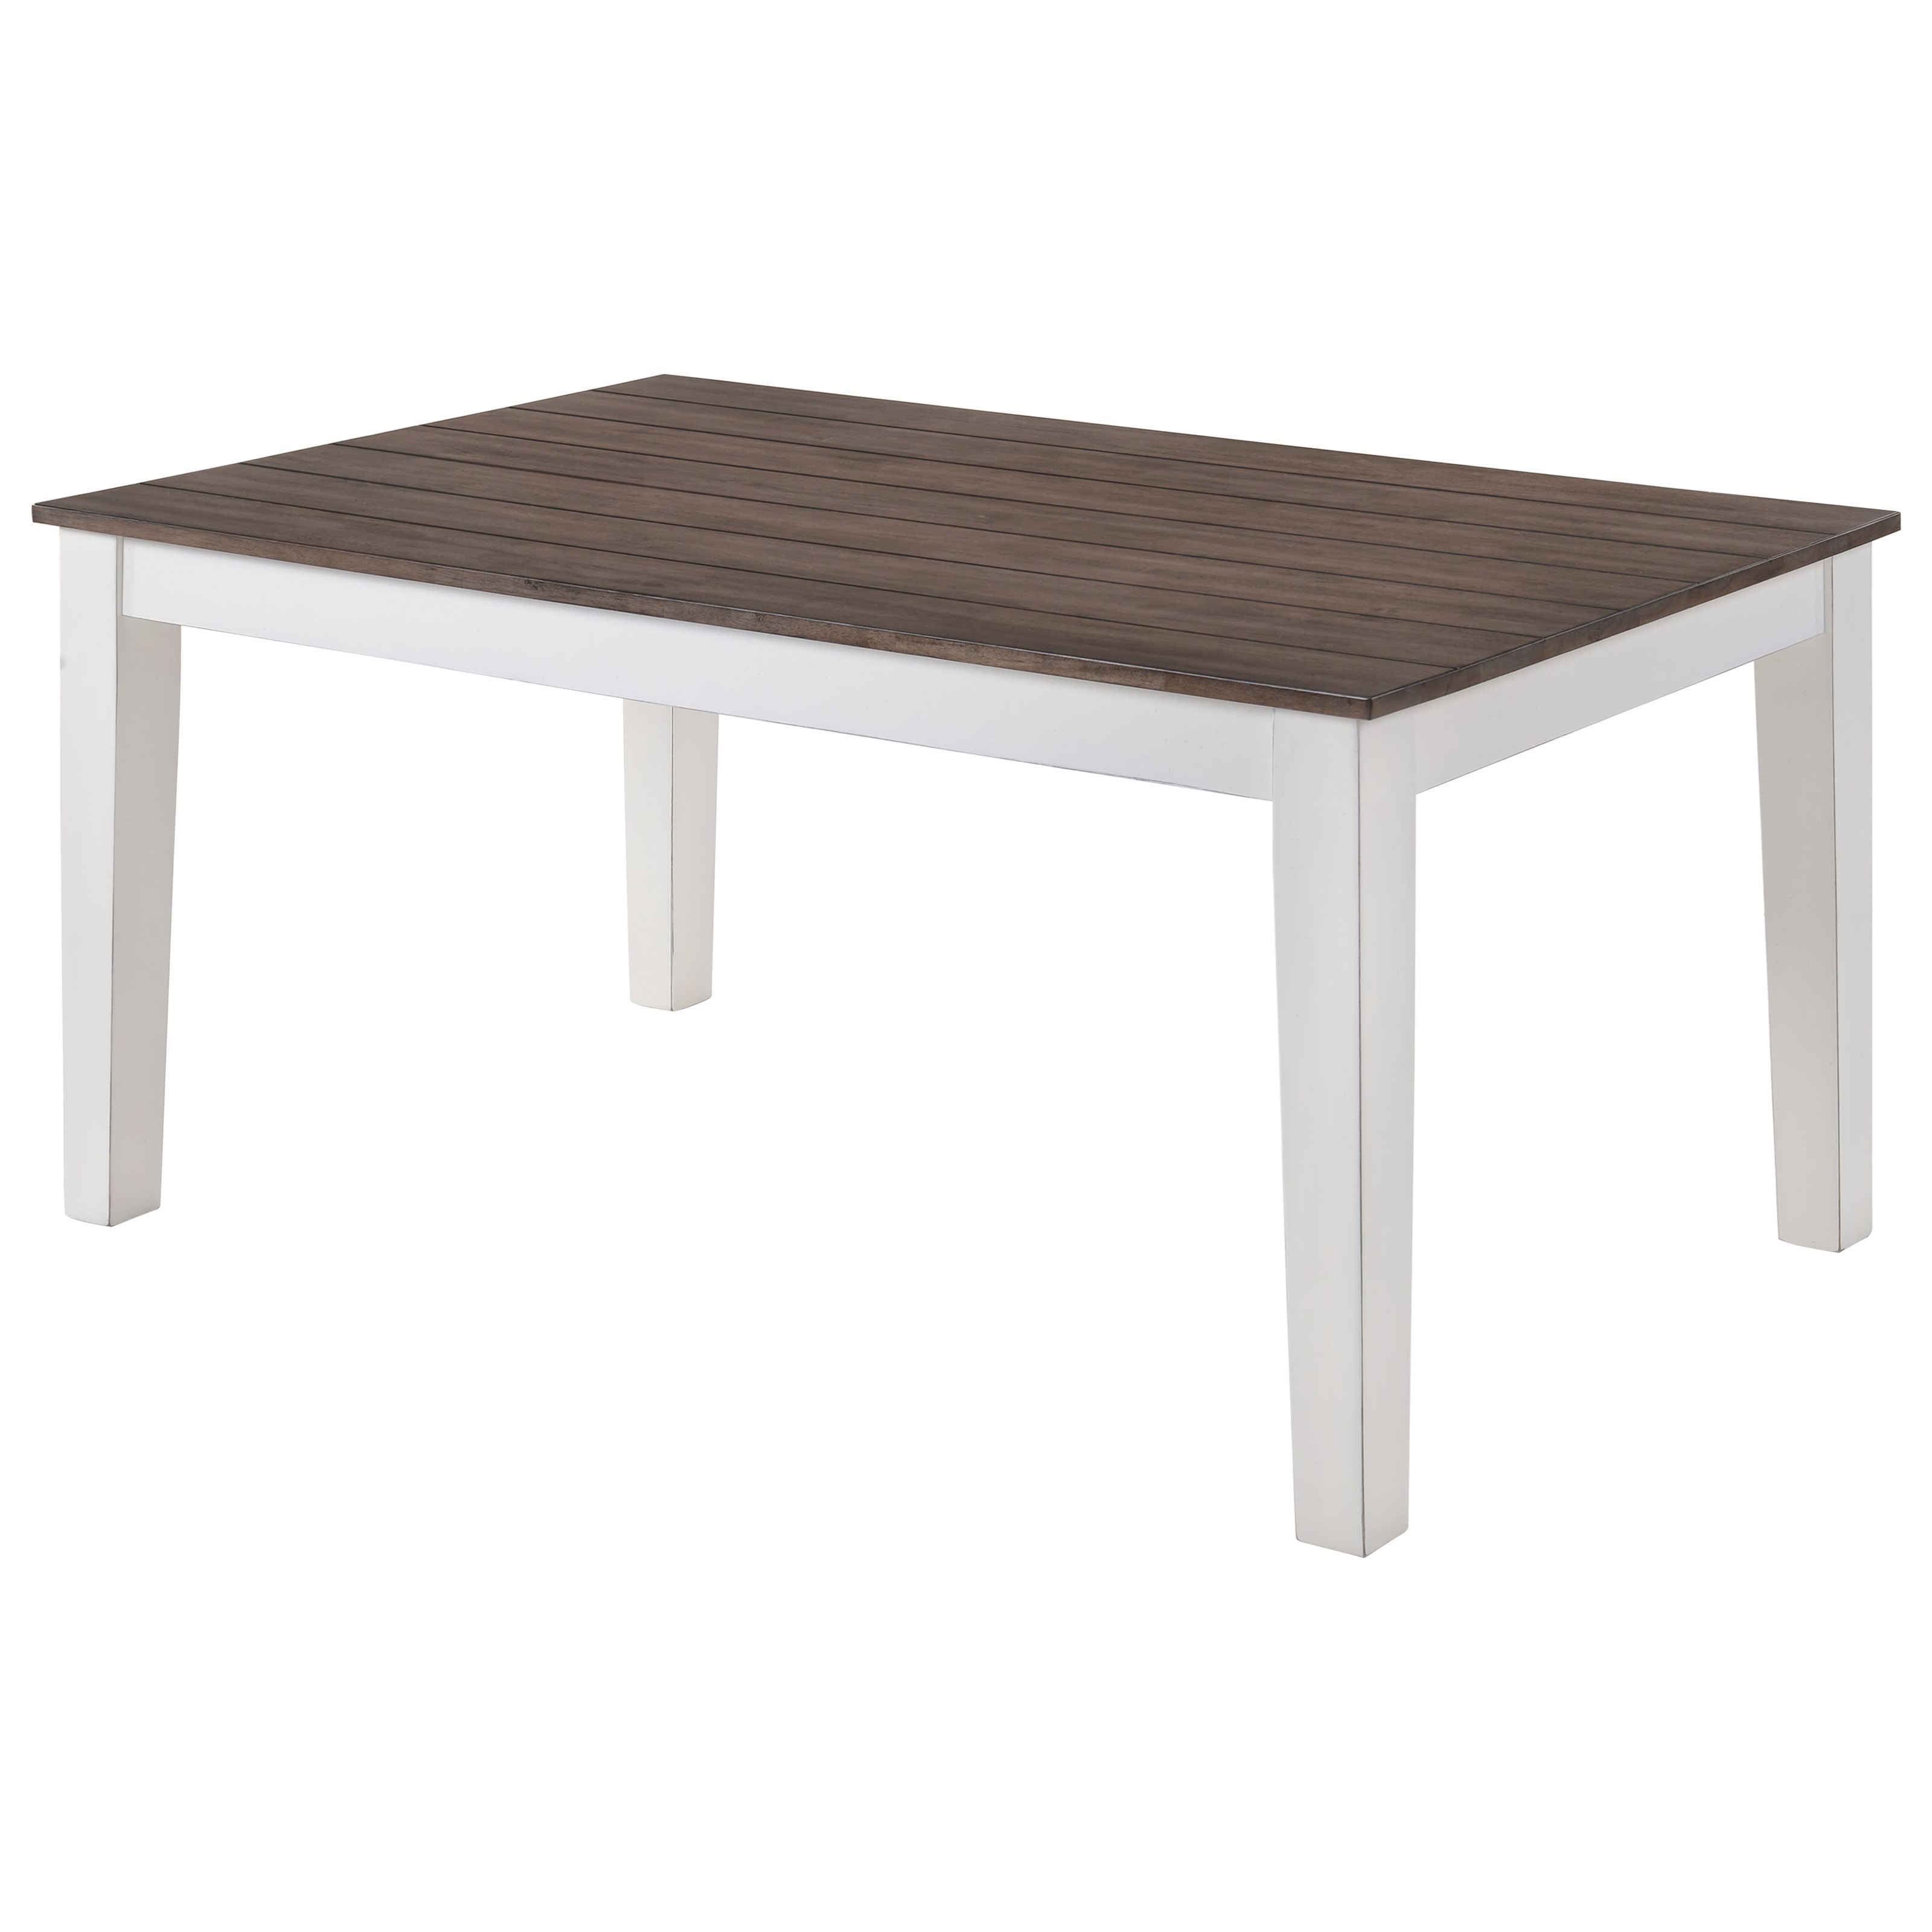 United Furniture Industries 5057 Rectangular Dining Table - Item Number: 5057-59